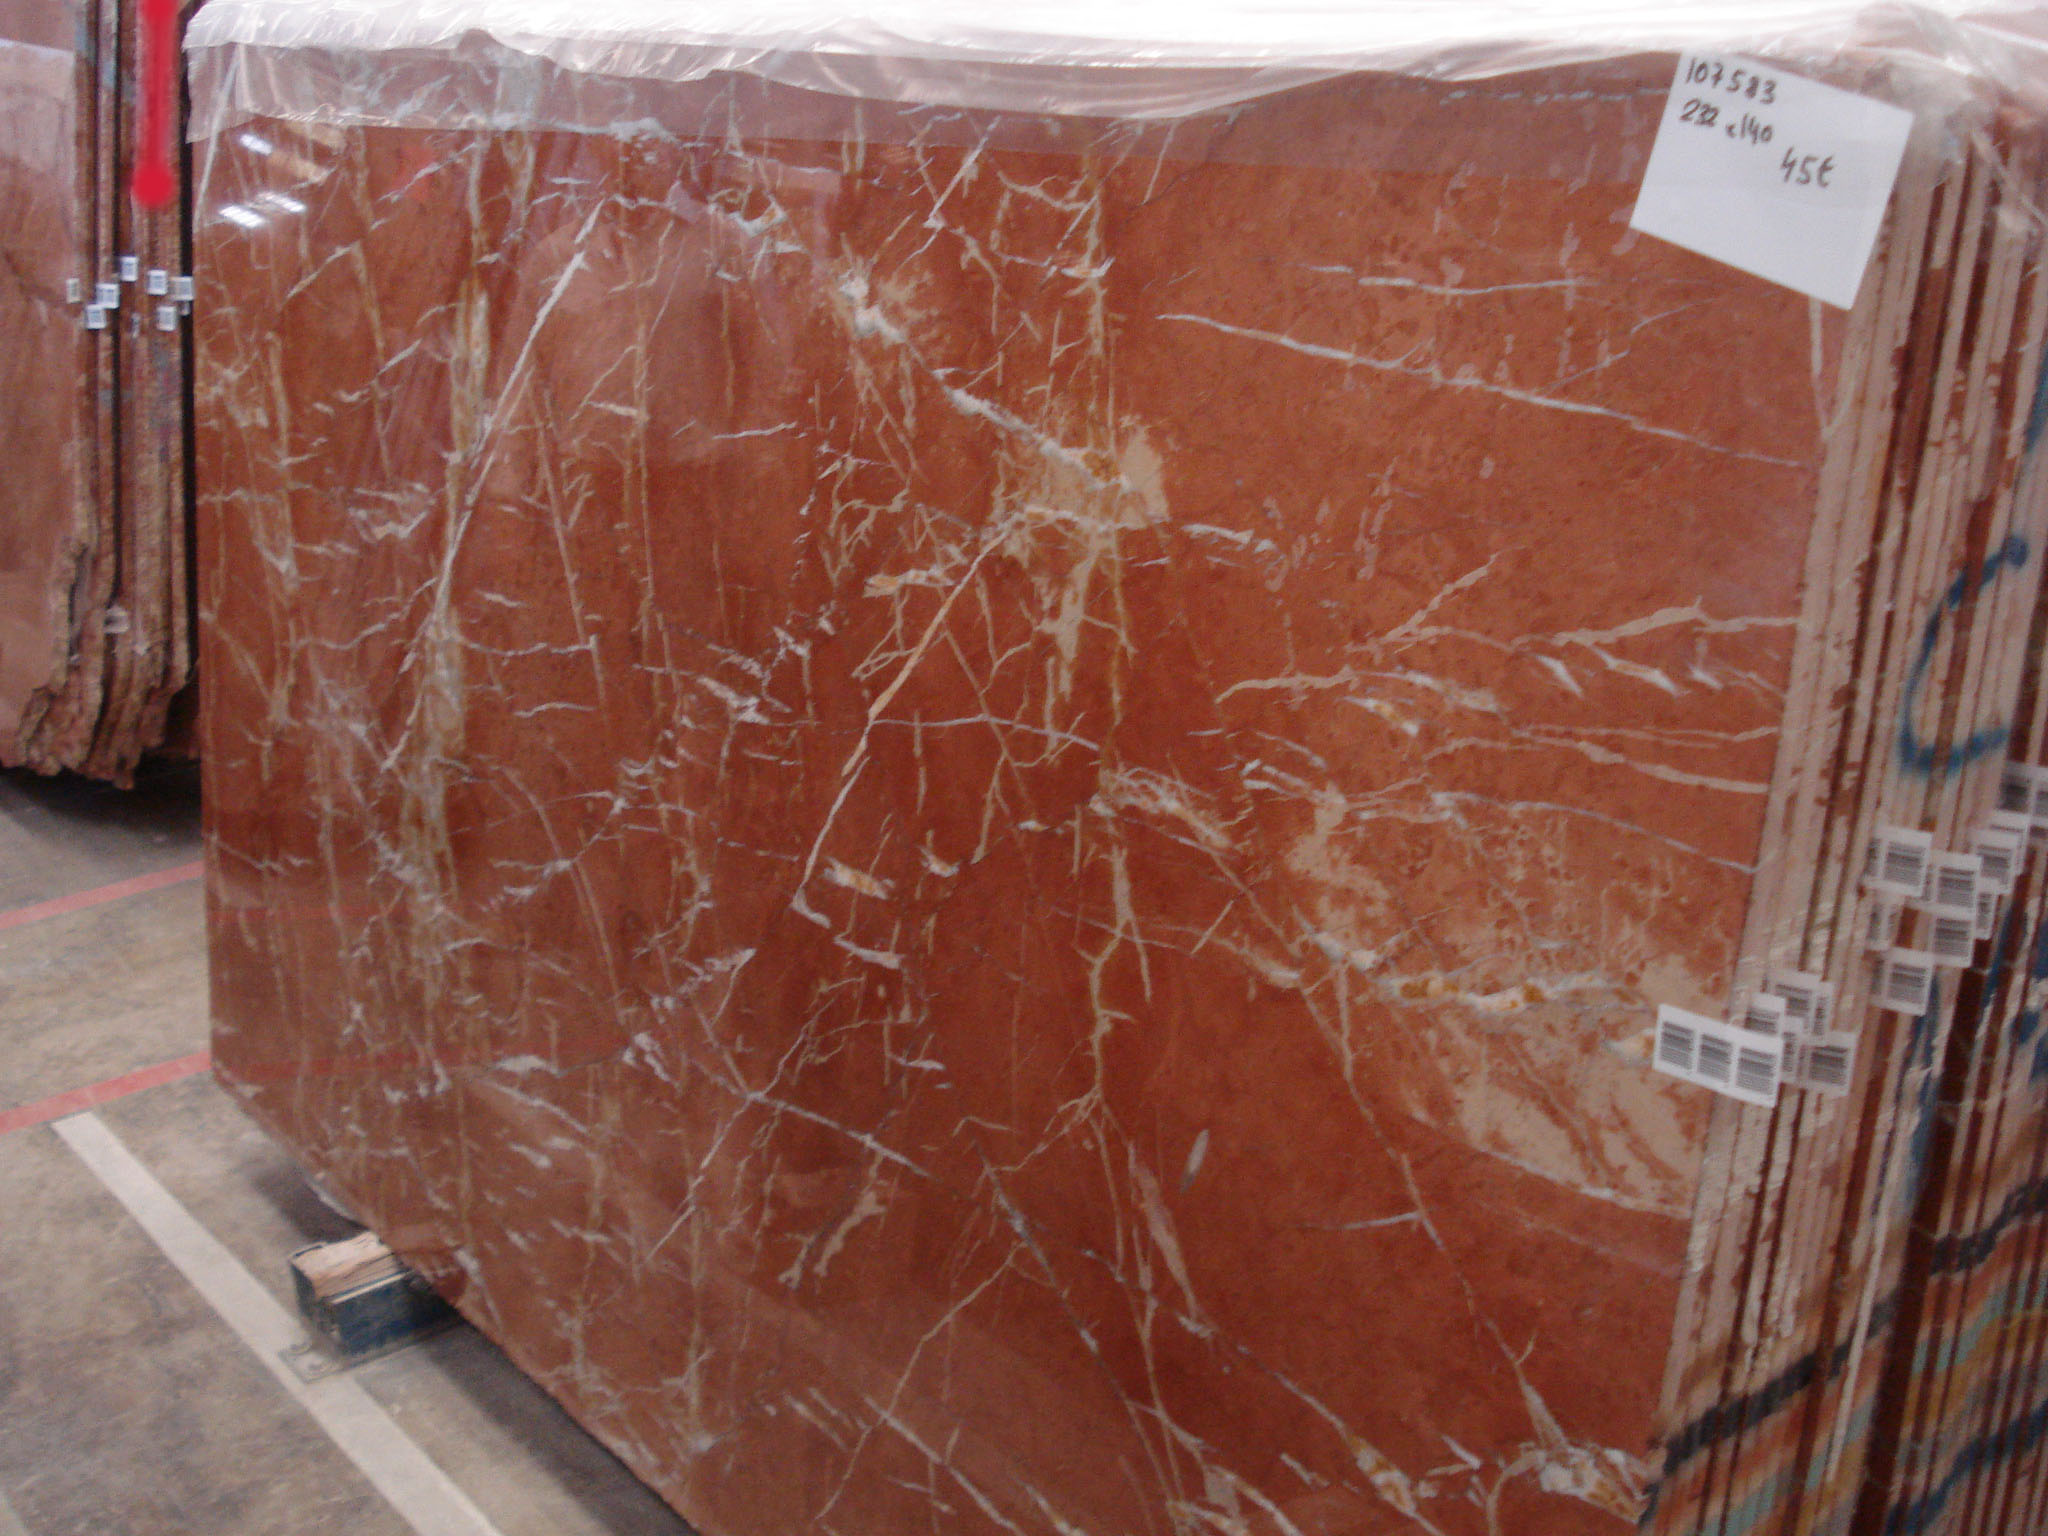 Granite With Veins Rojo Alicante Classic Marble - Product Description